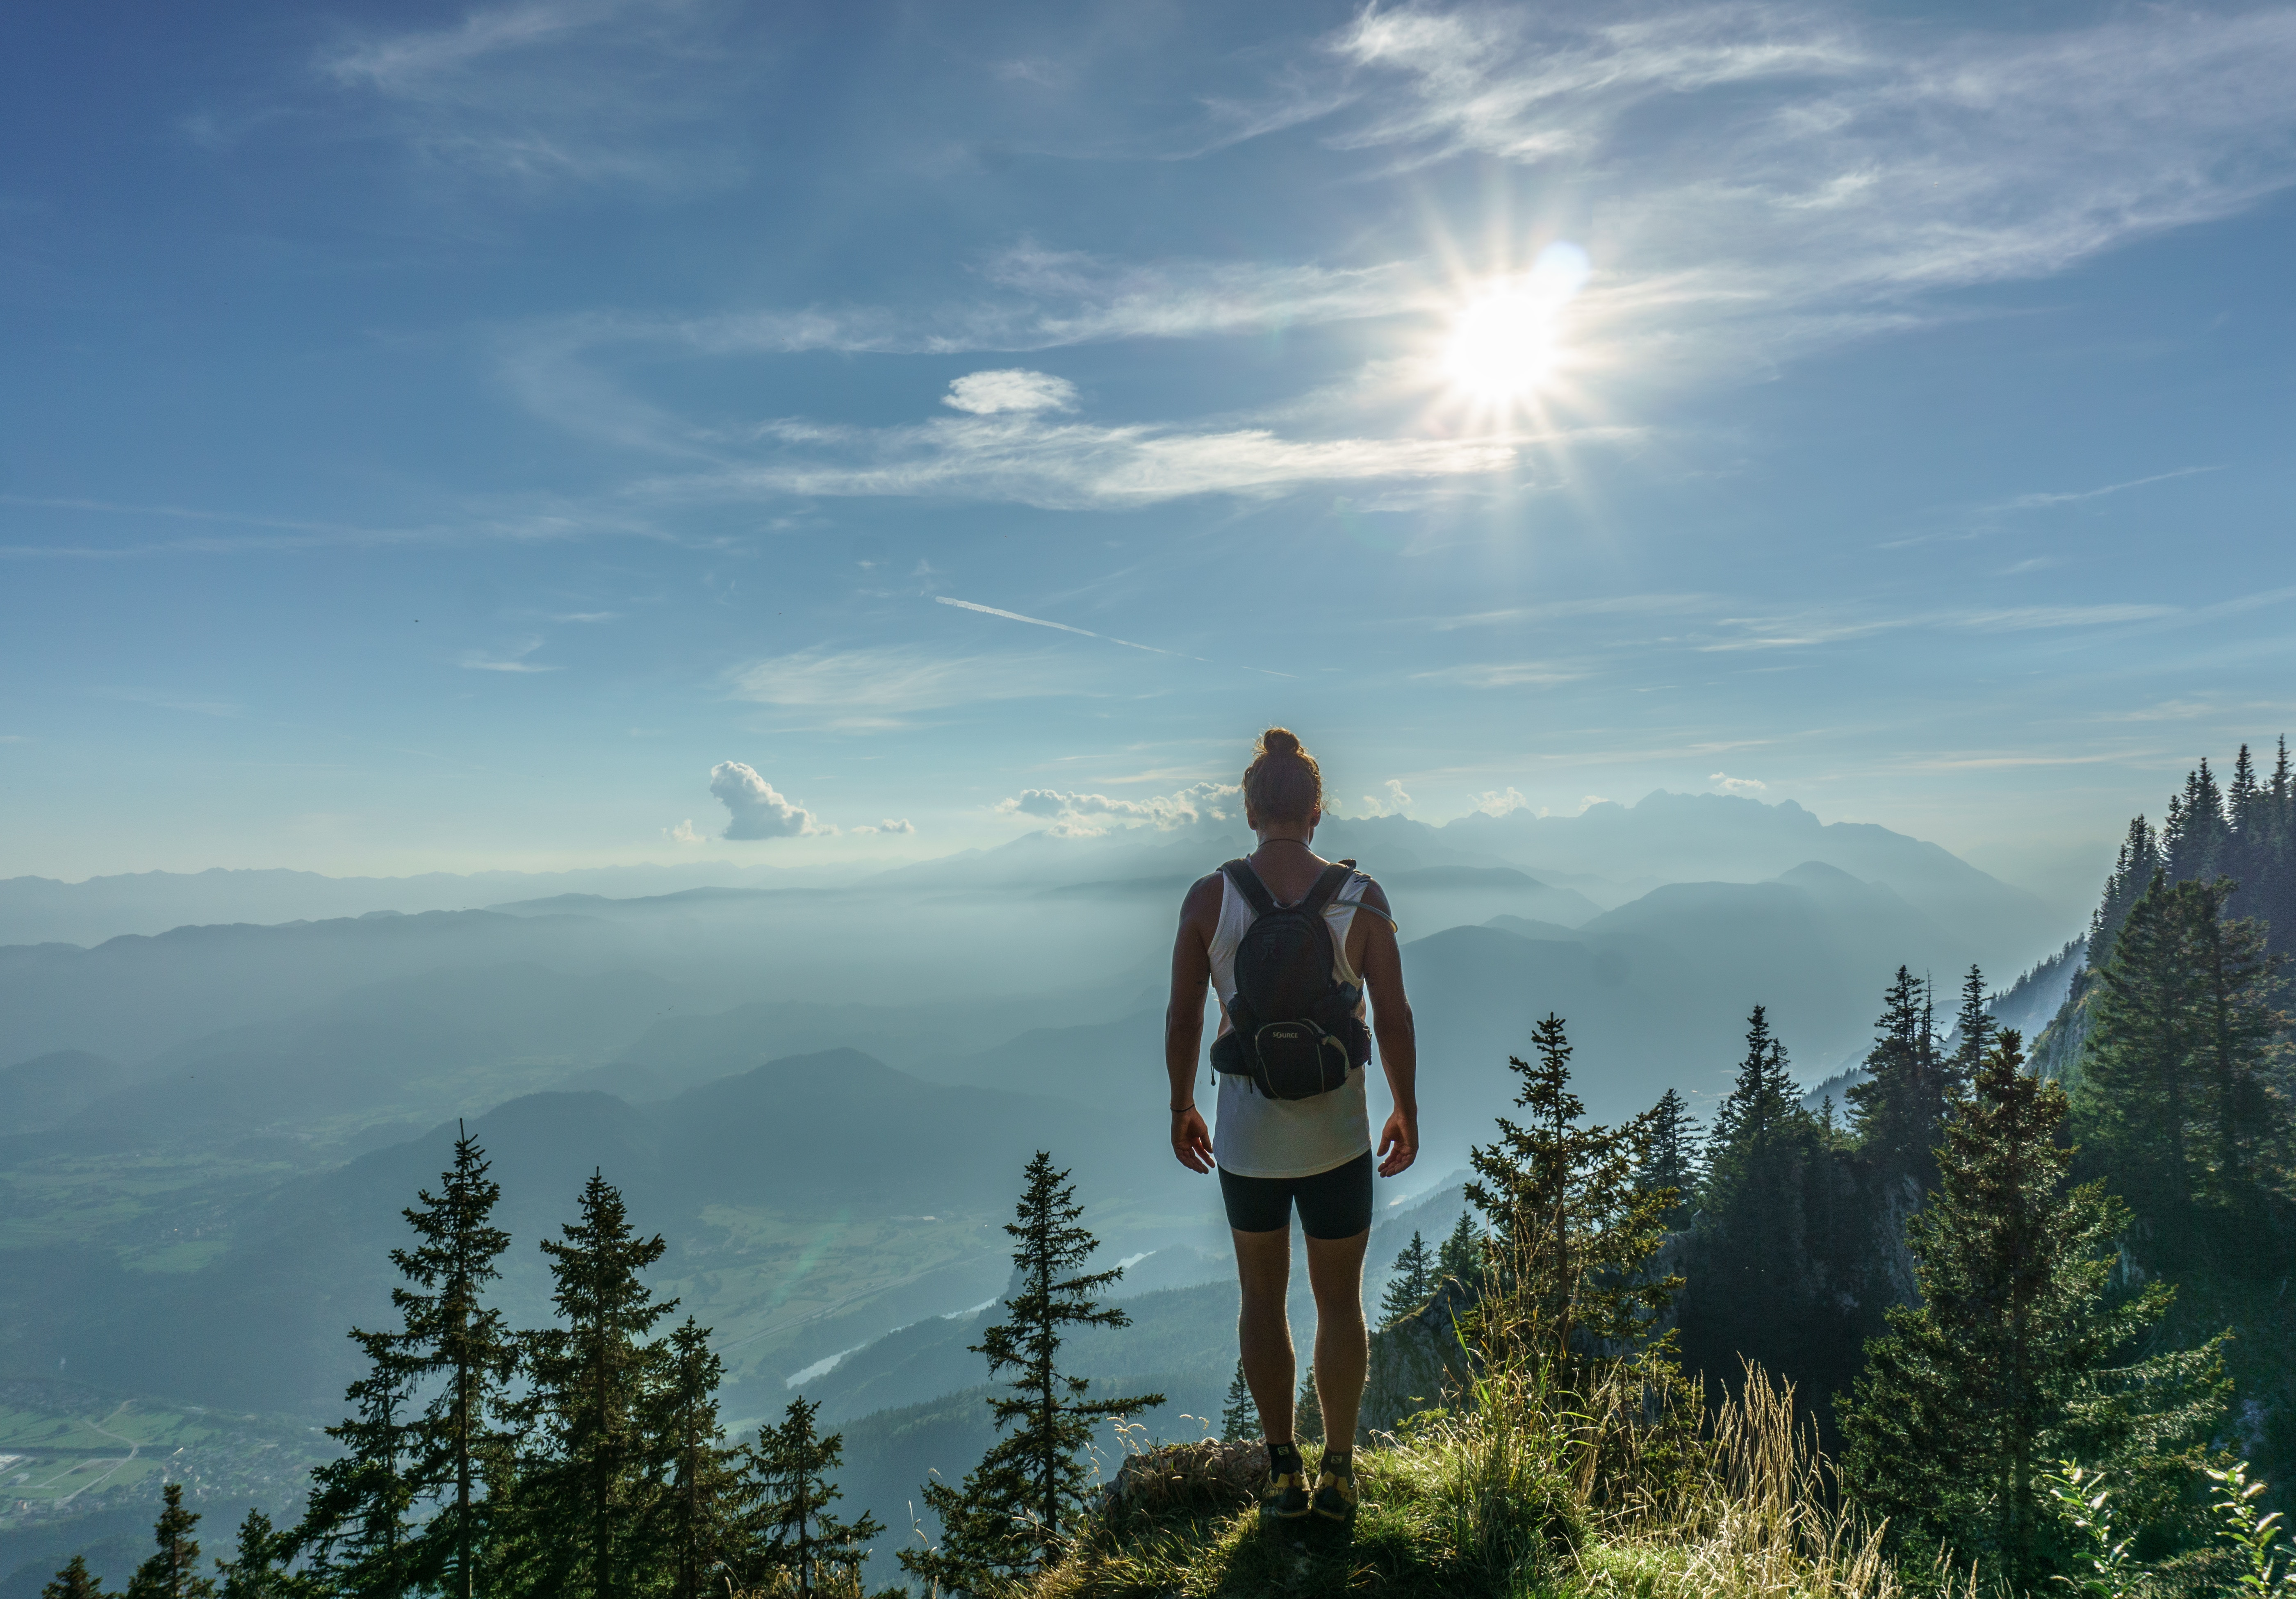 Male hiker in the mountains photo